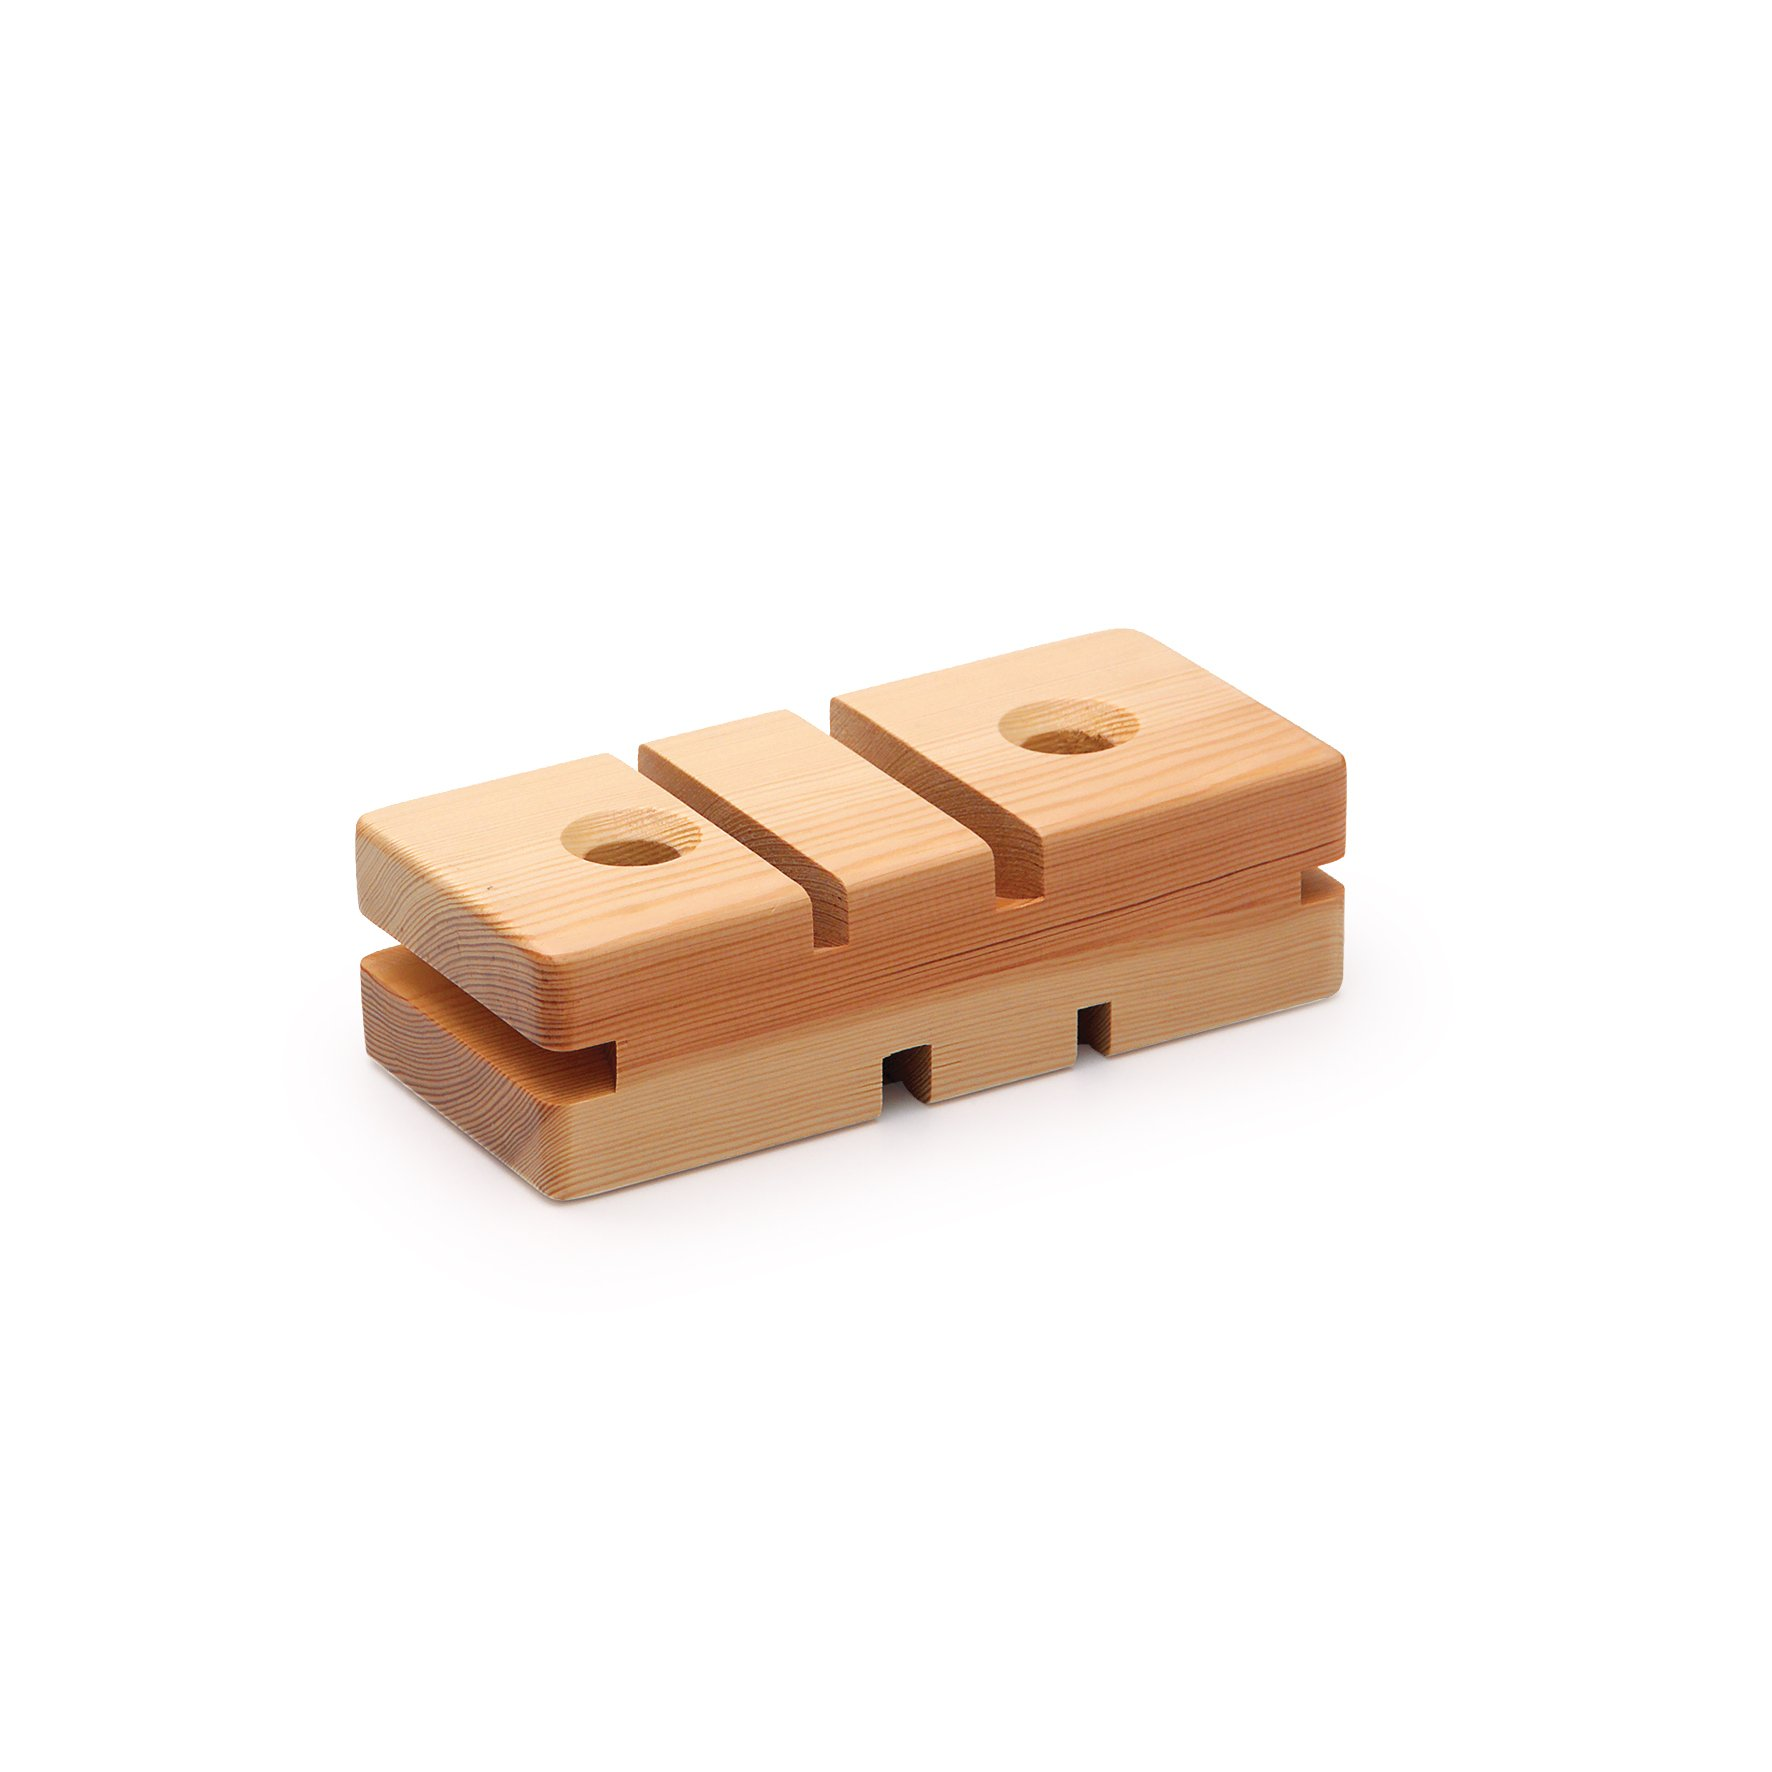 Erzi 24 5 x 11 x 7 cm German Wooden Toy Gymnastic Block